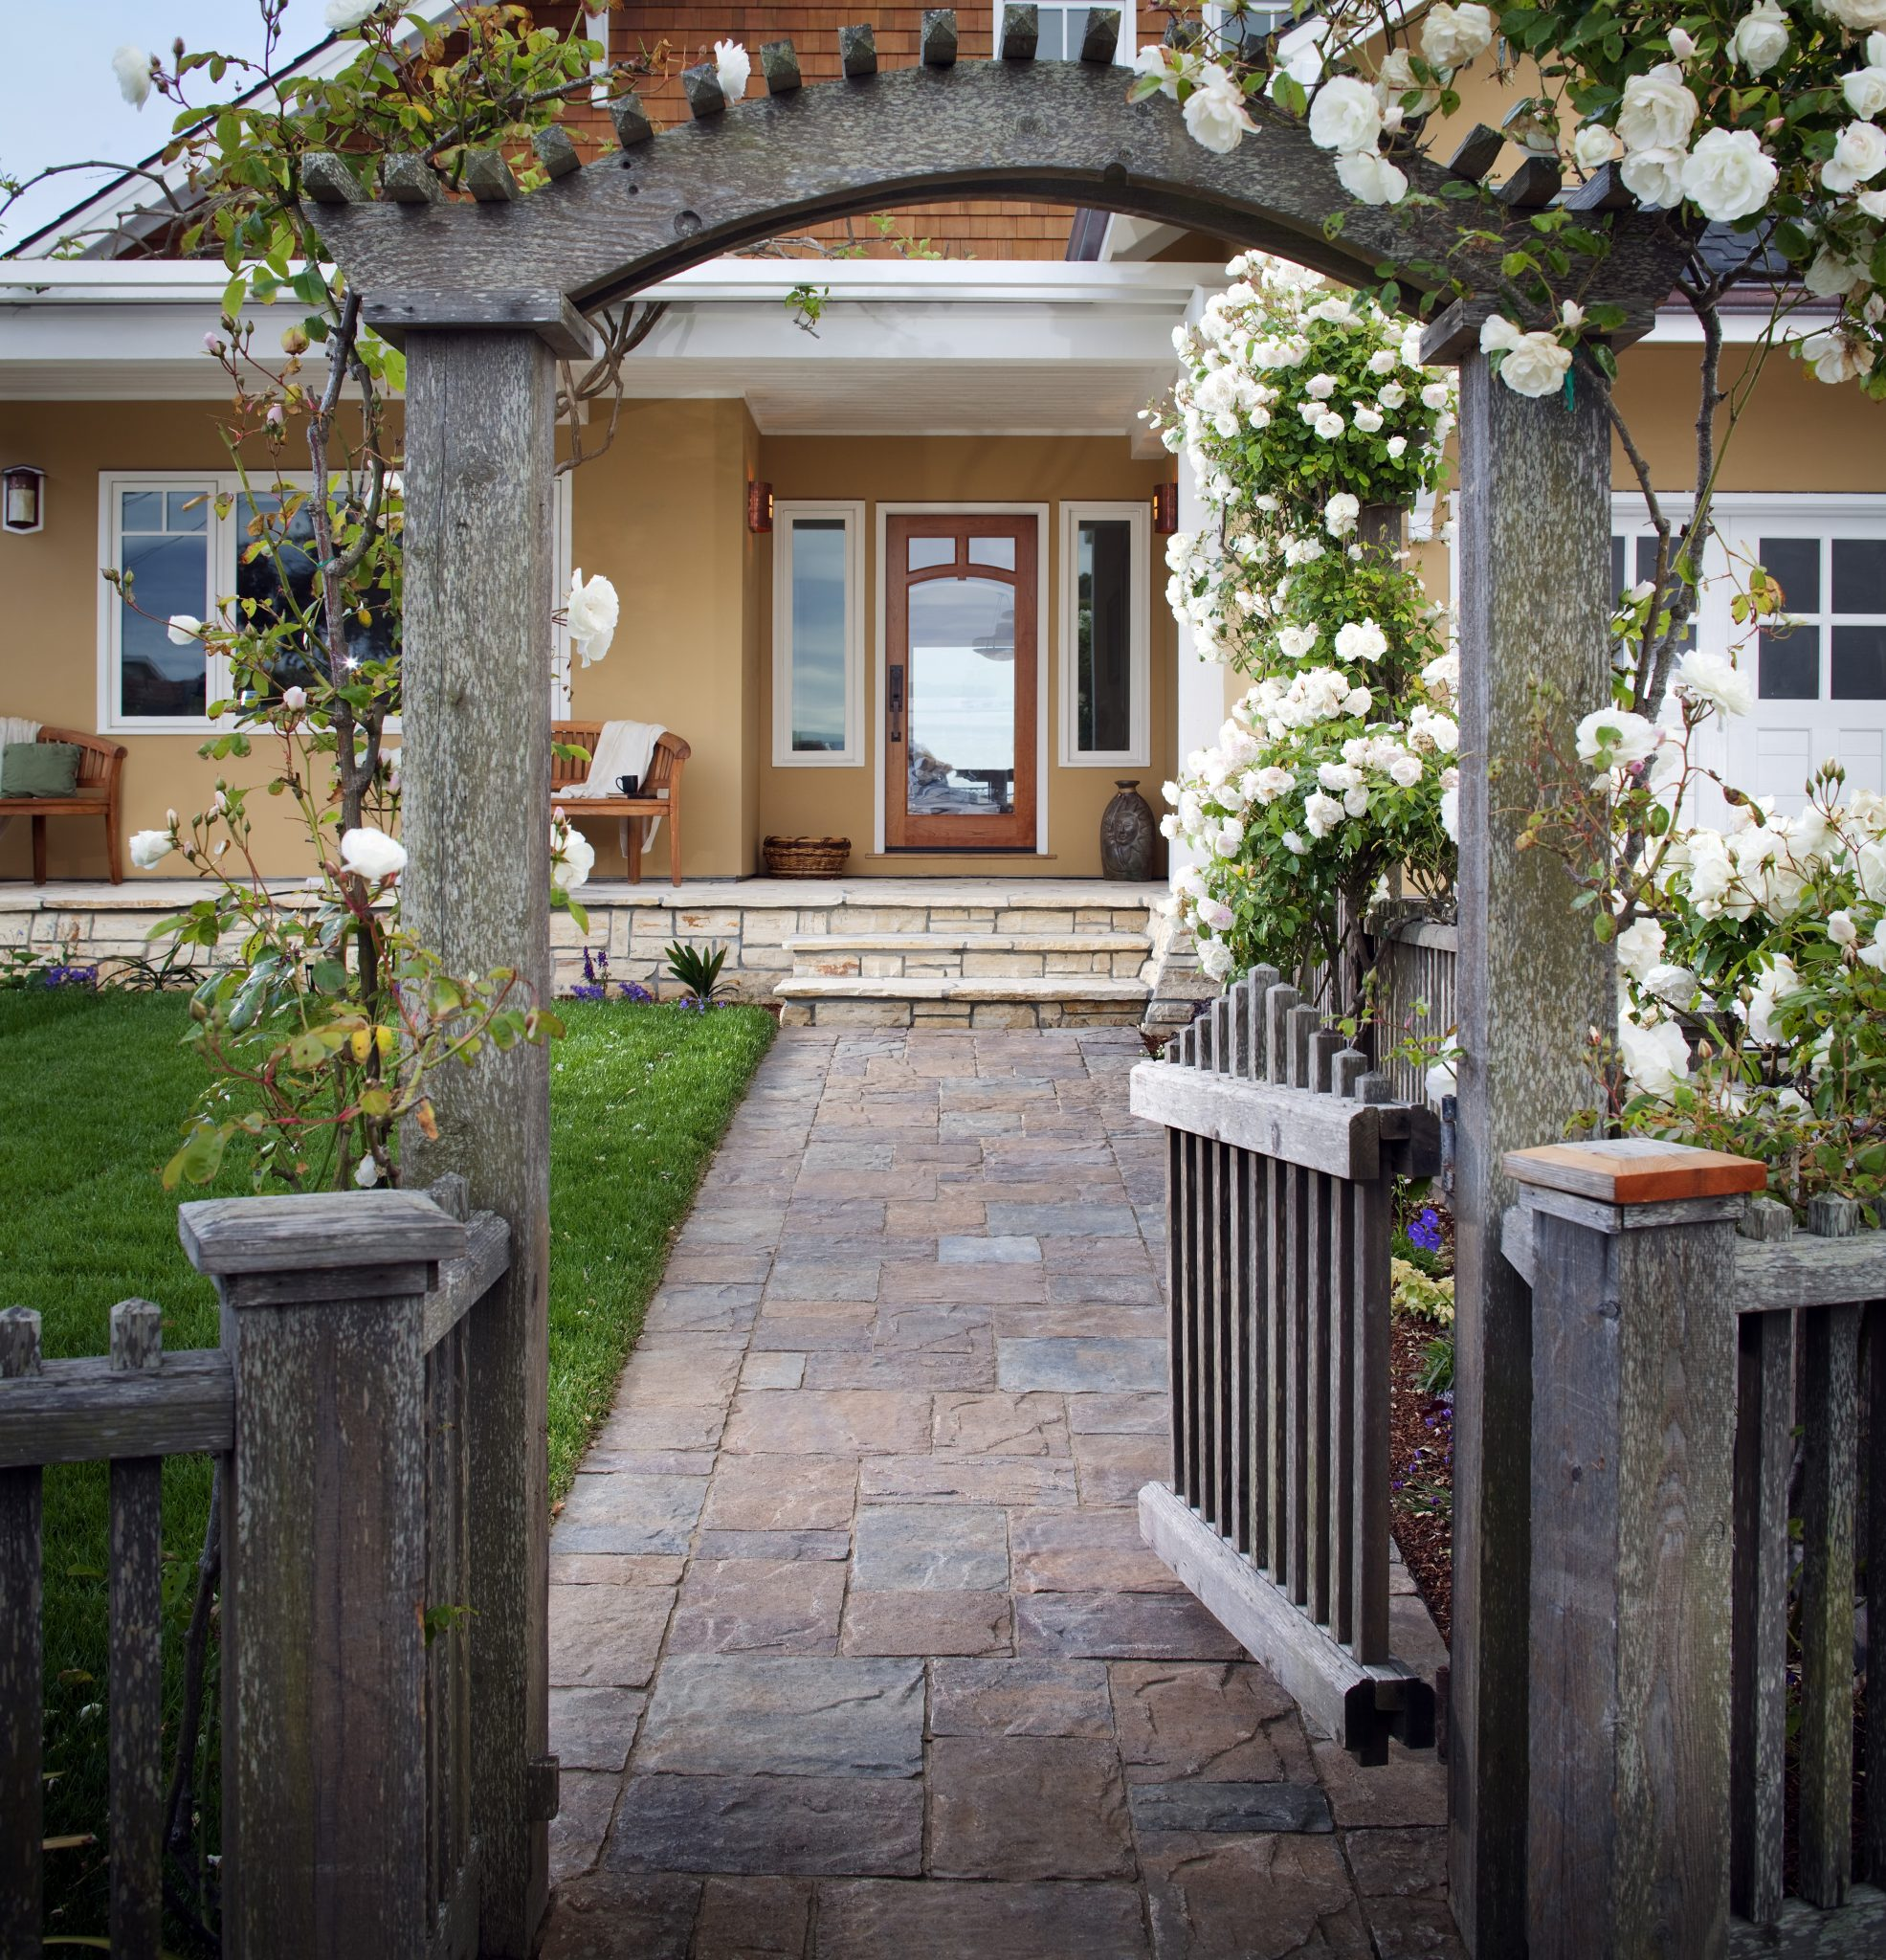 Increase Your Property: Paving Stone Makeover